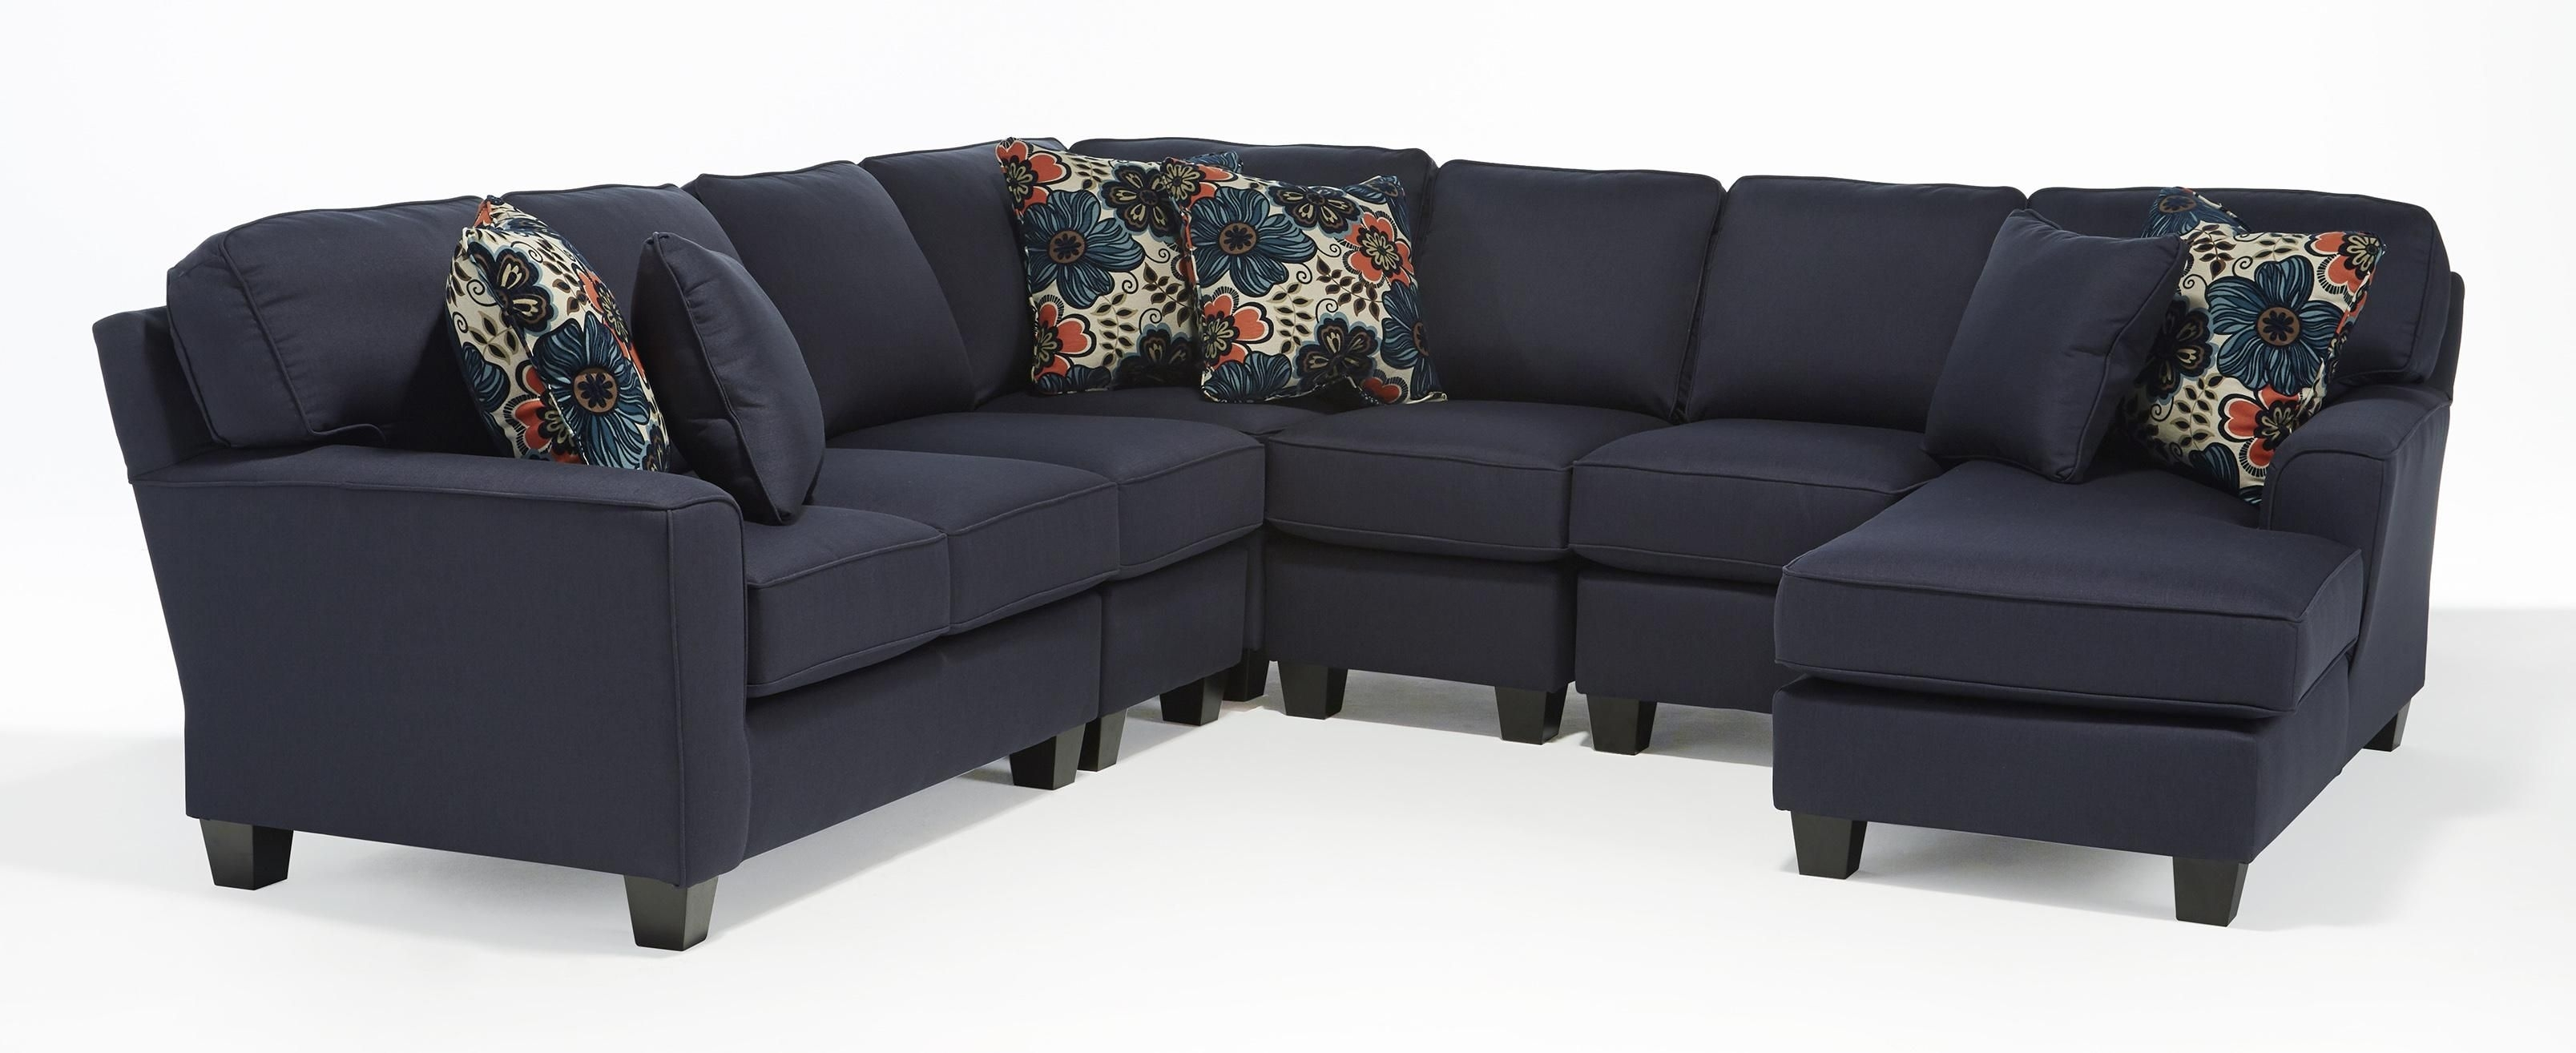 Best Home Furnishings Annabel Five Piece Customizable Sectional Sofa Pertaining To Home Furniture Sectional Sofas (Image 1 of 10)